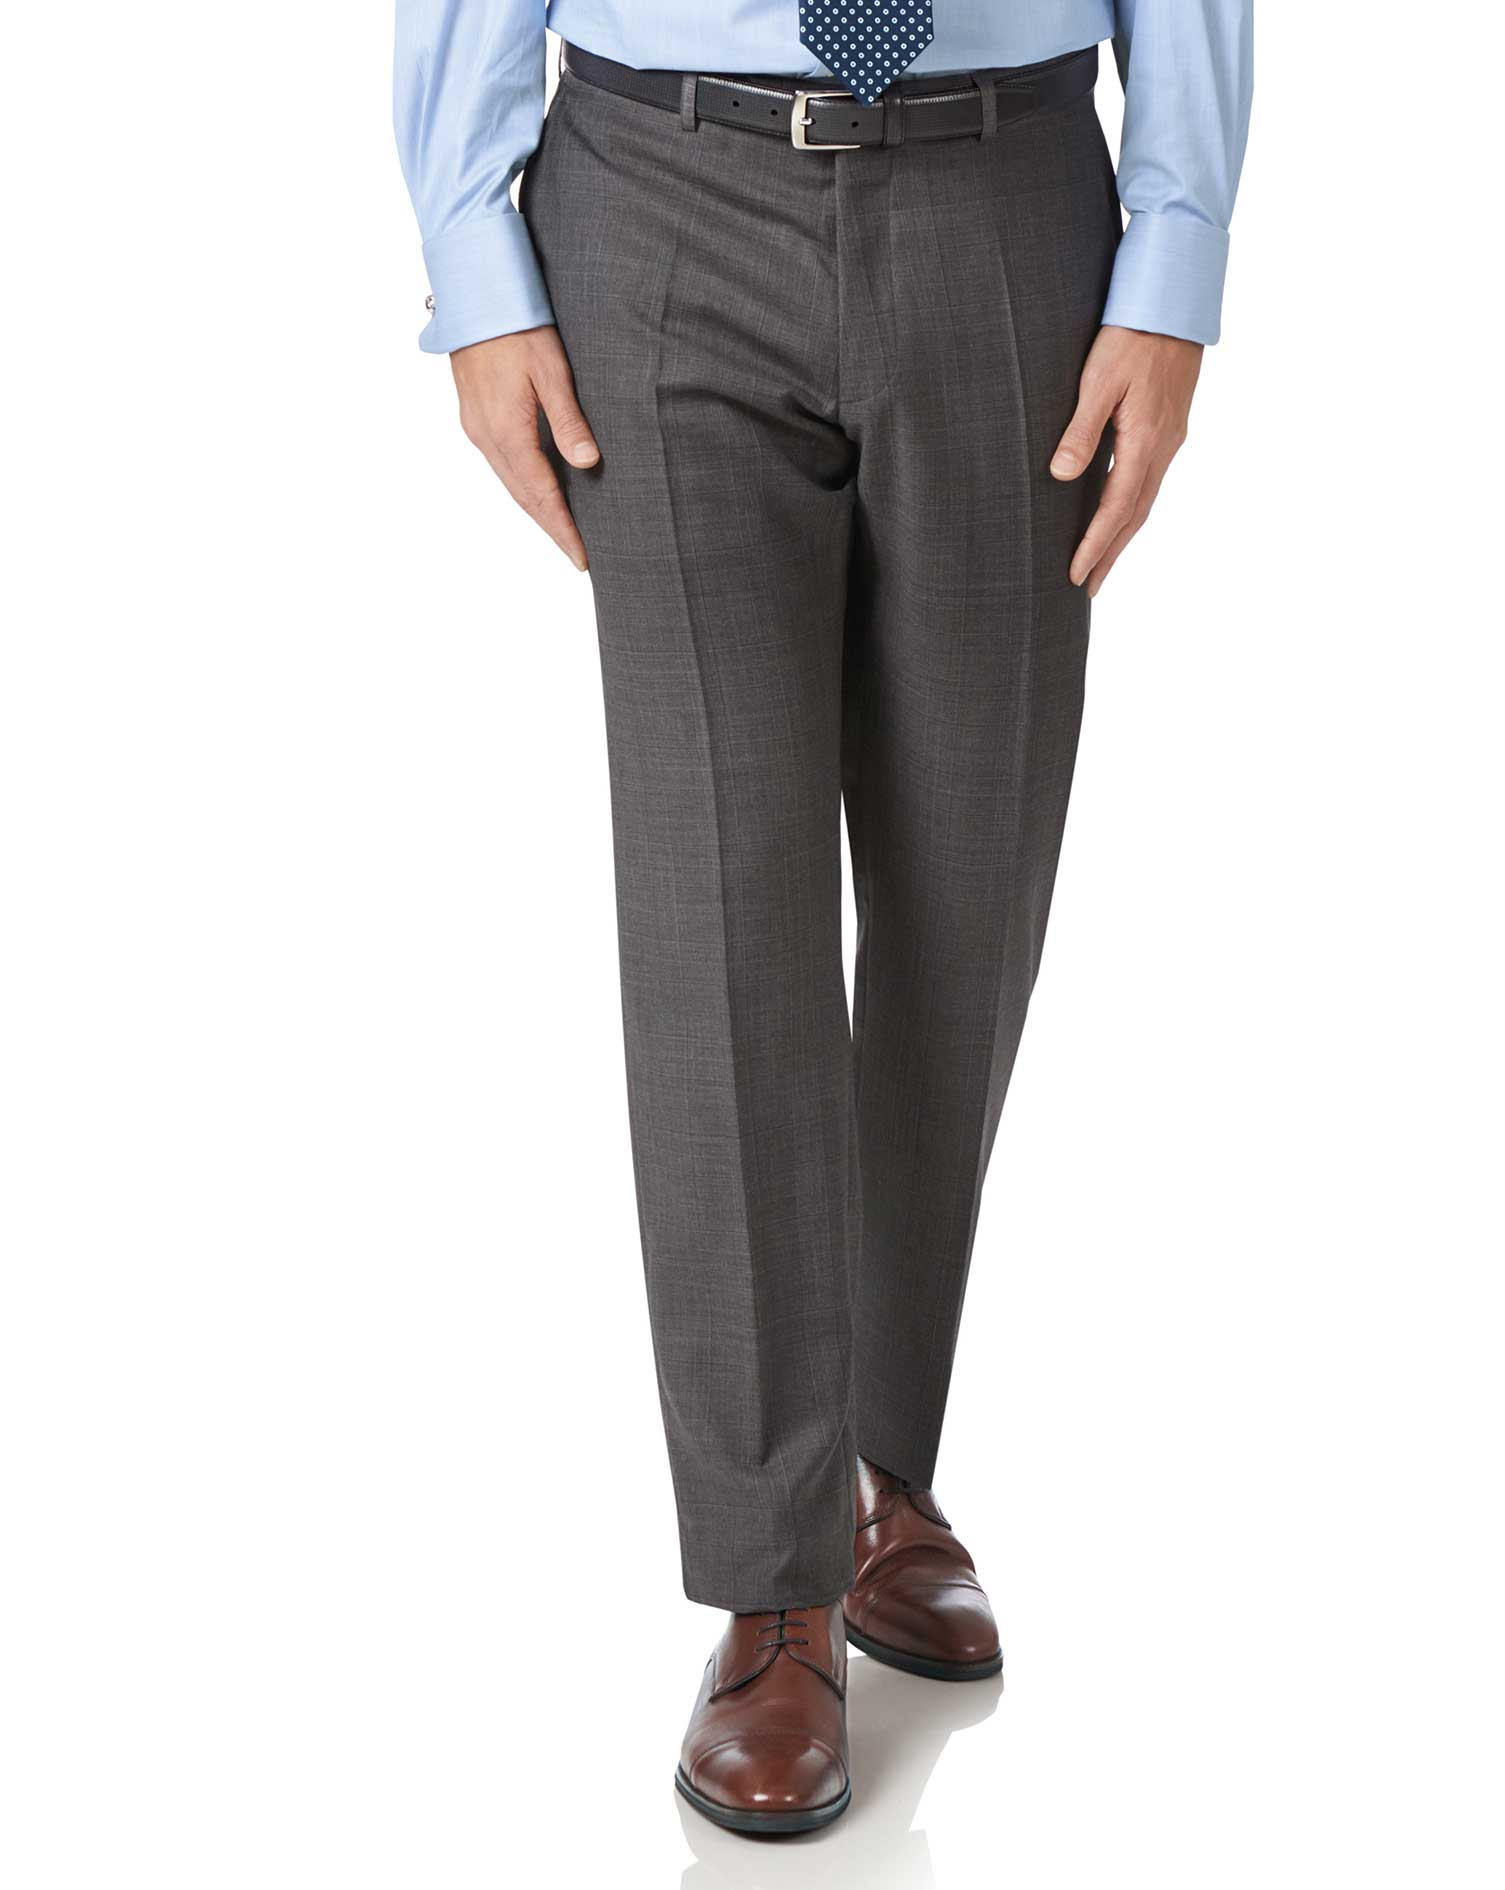 Grey Slim Fit Luxury Italian Check Suit Trousers Size W38 L38 by Charles Tyrwhitt